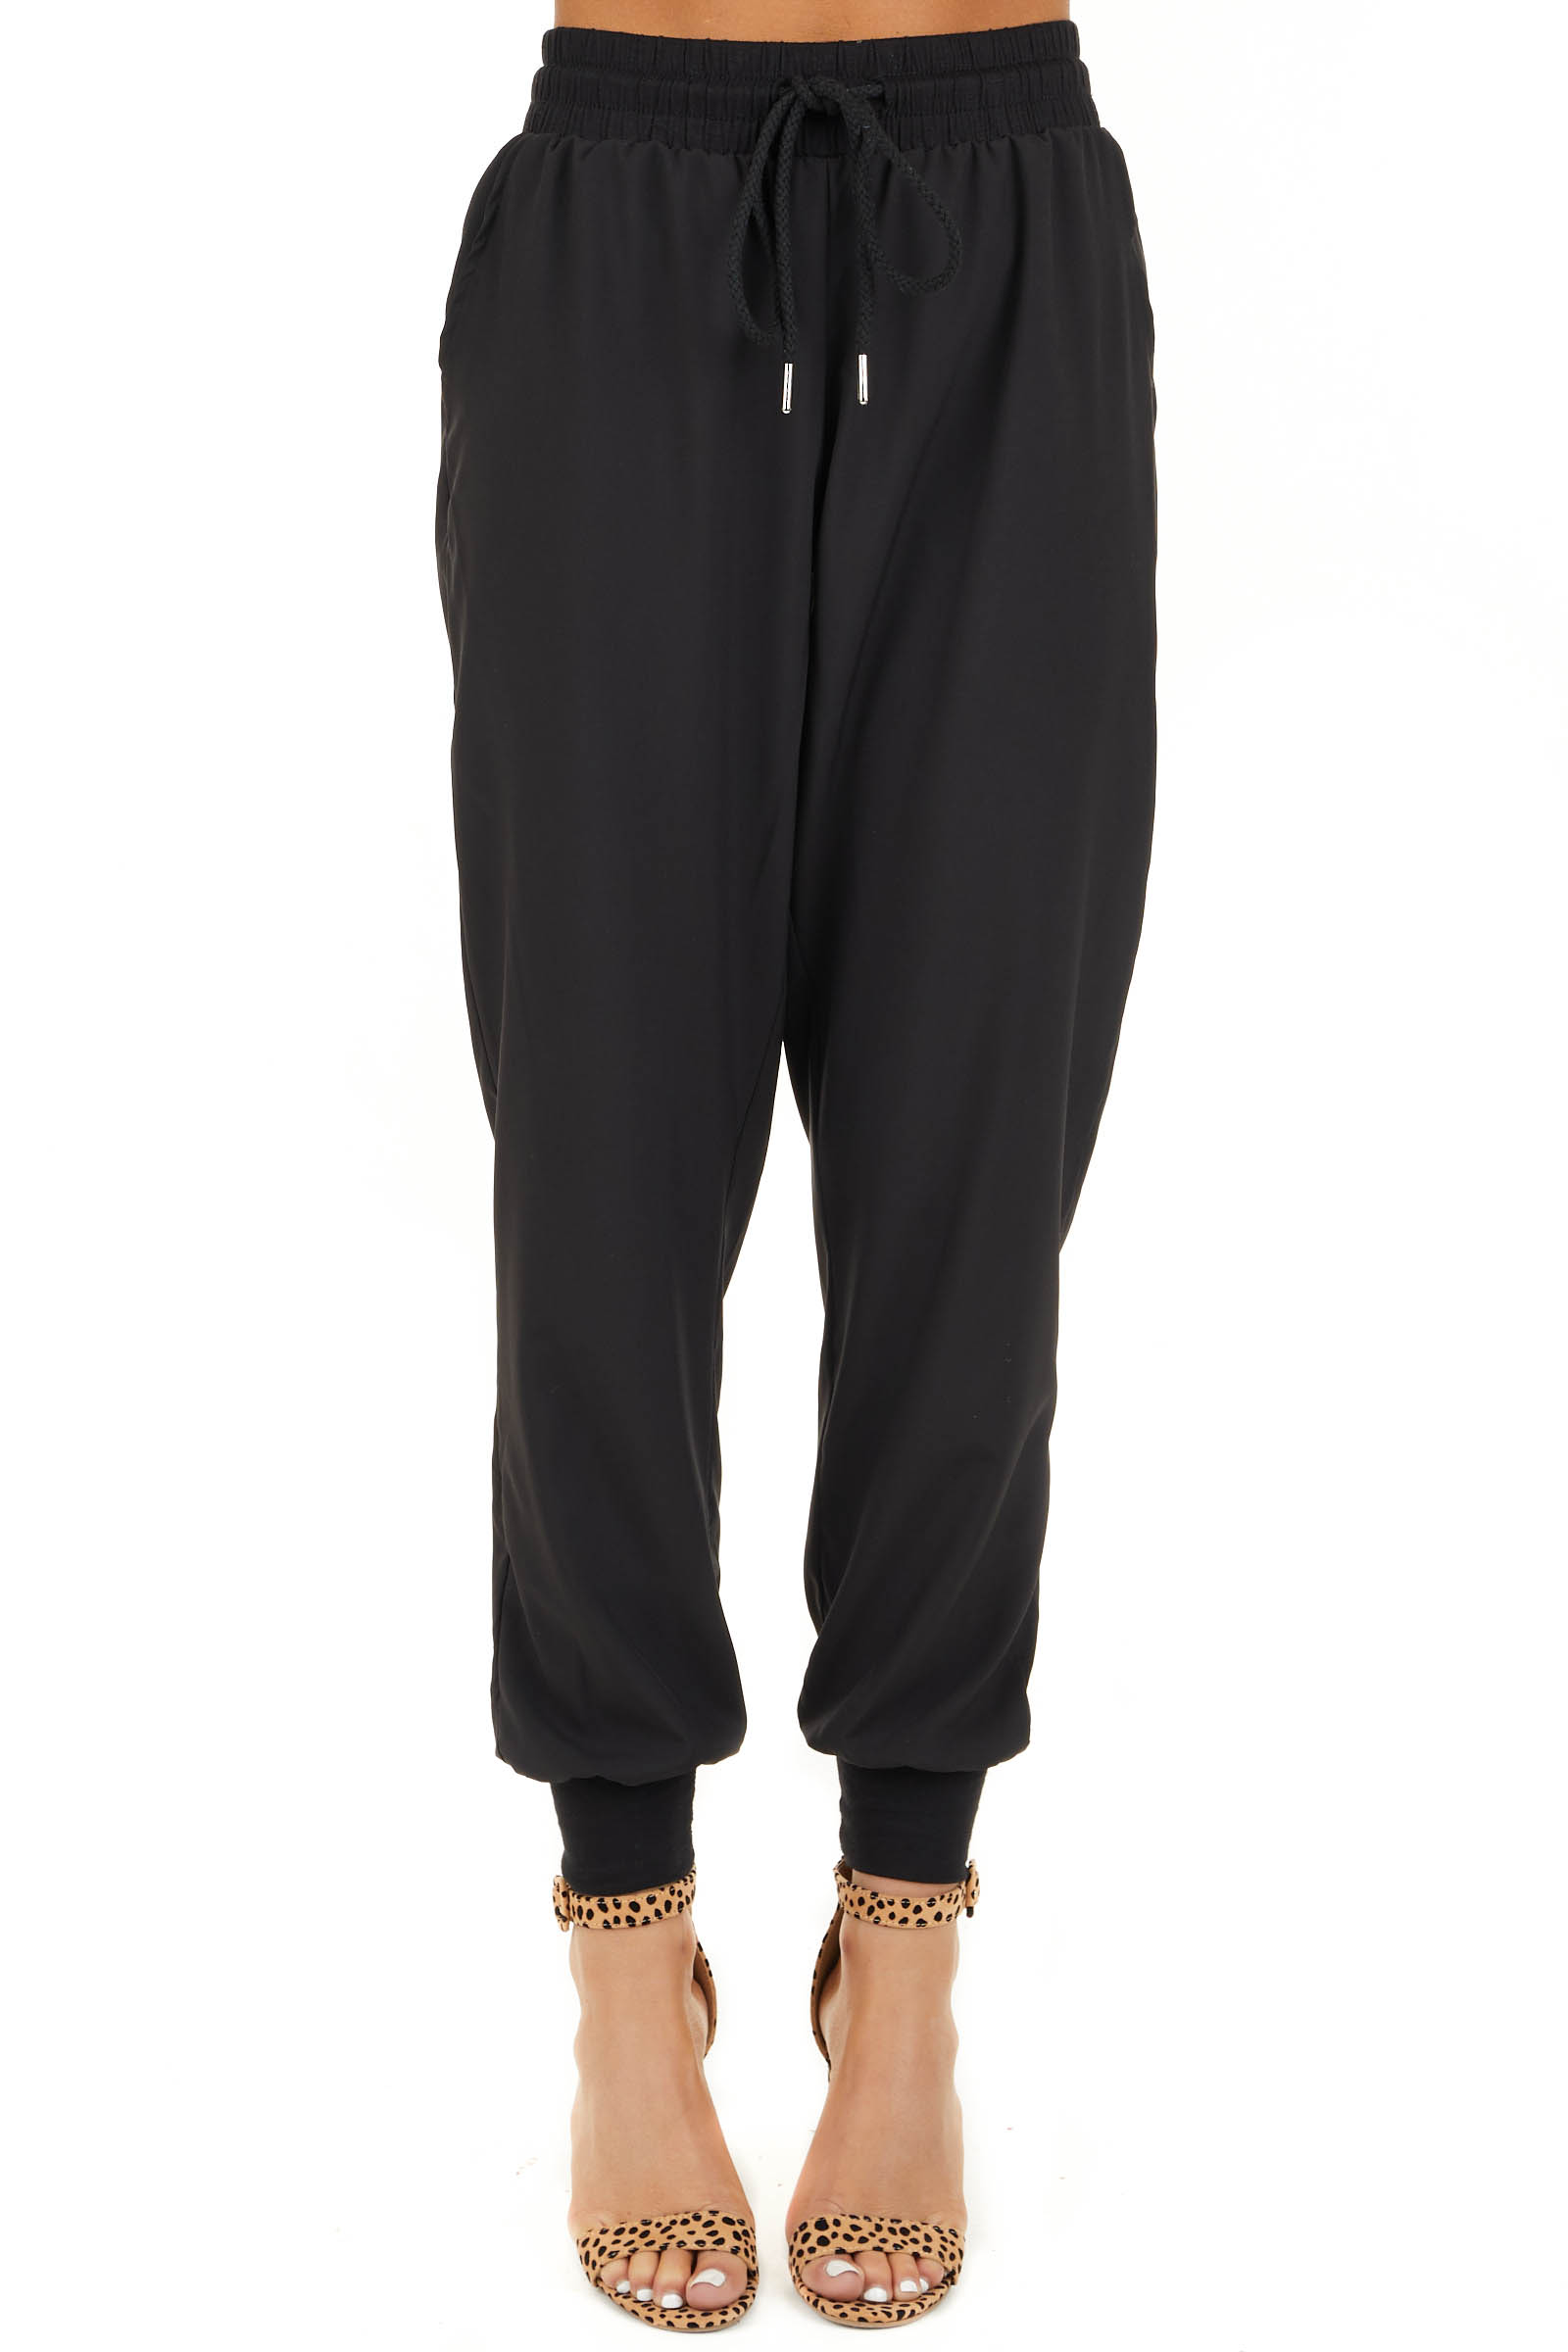 Black Jogger Pants with Elastic Waist and Pockets front view